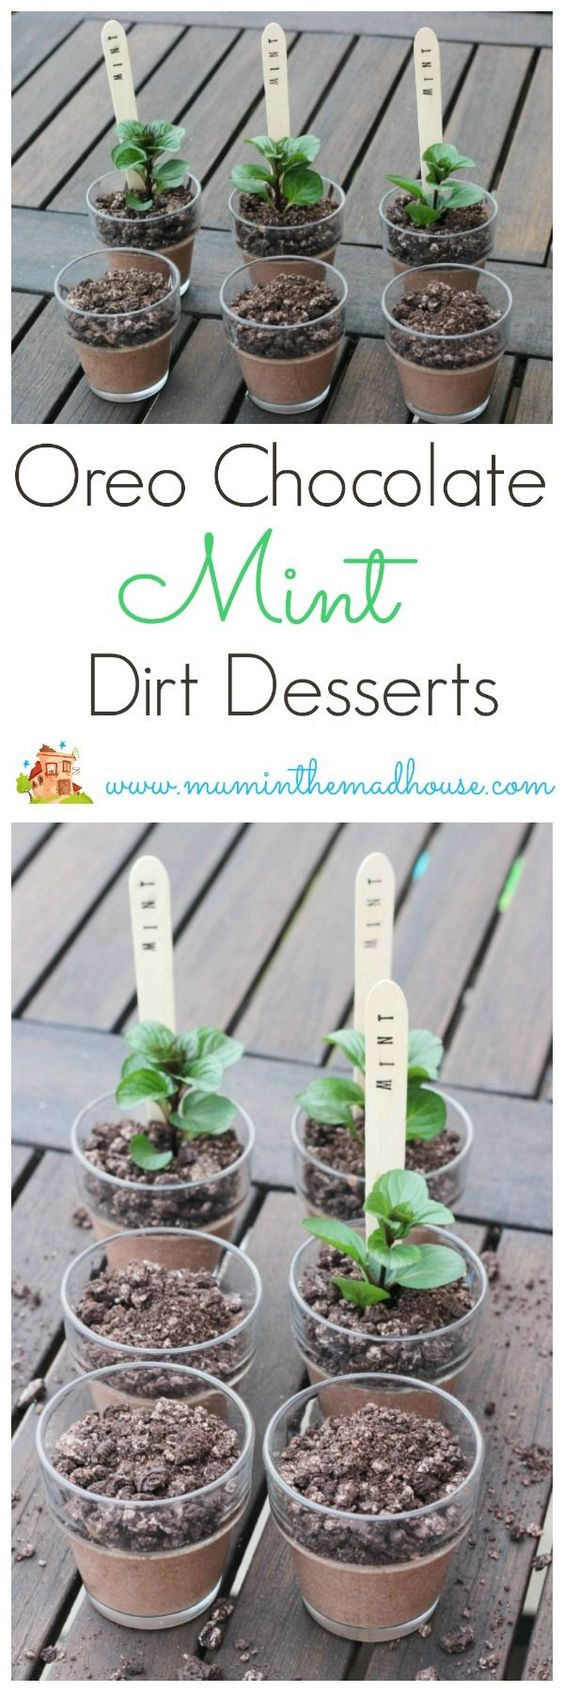 Oreo dirt desserts or chocolate mint puddings | Recipe | Dirt Dessert ...